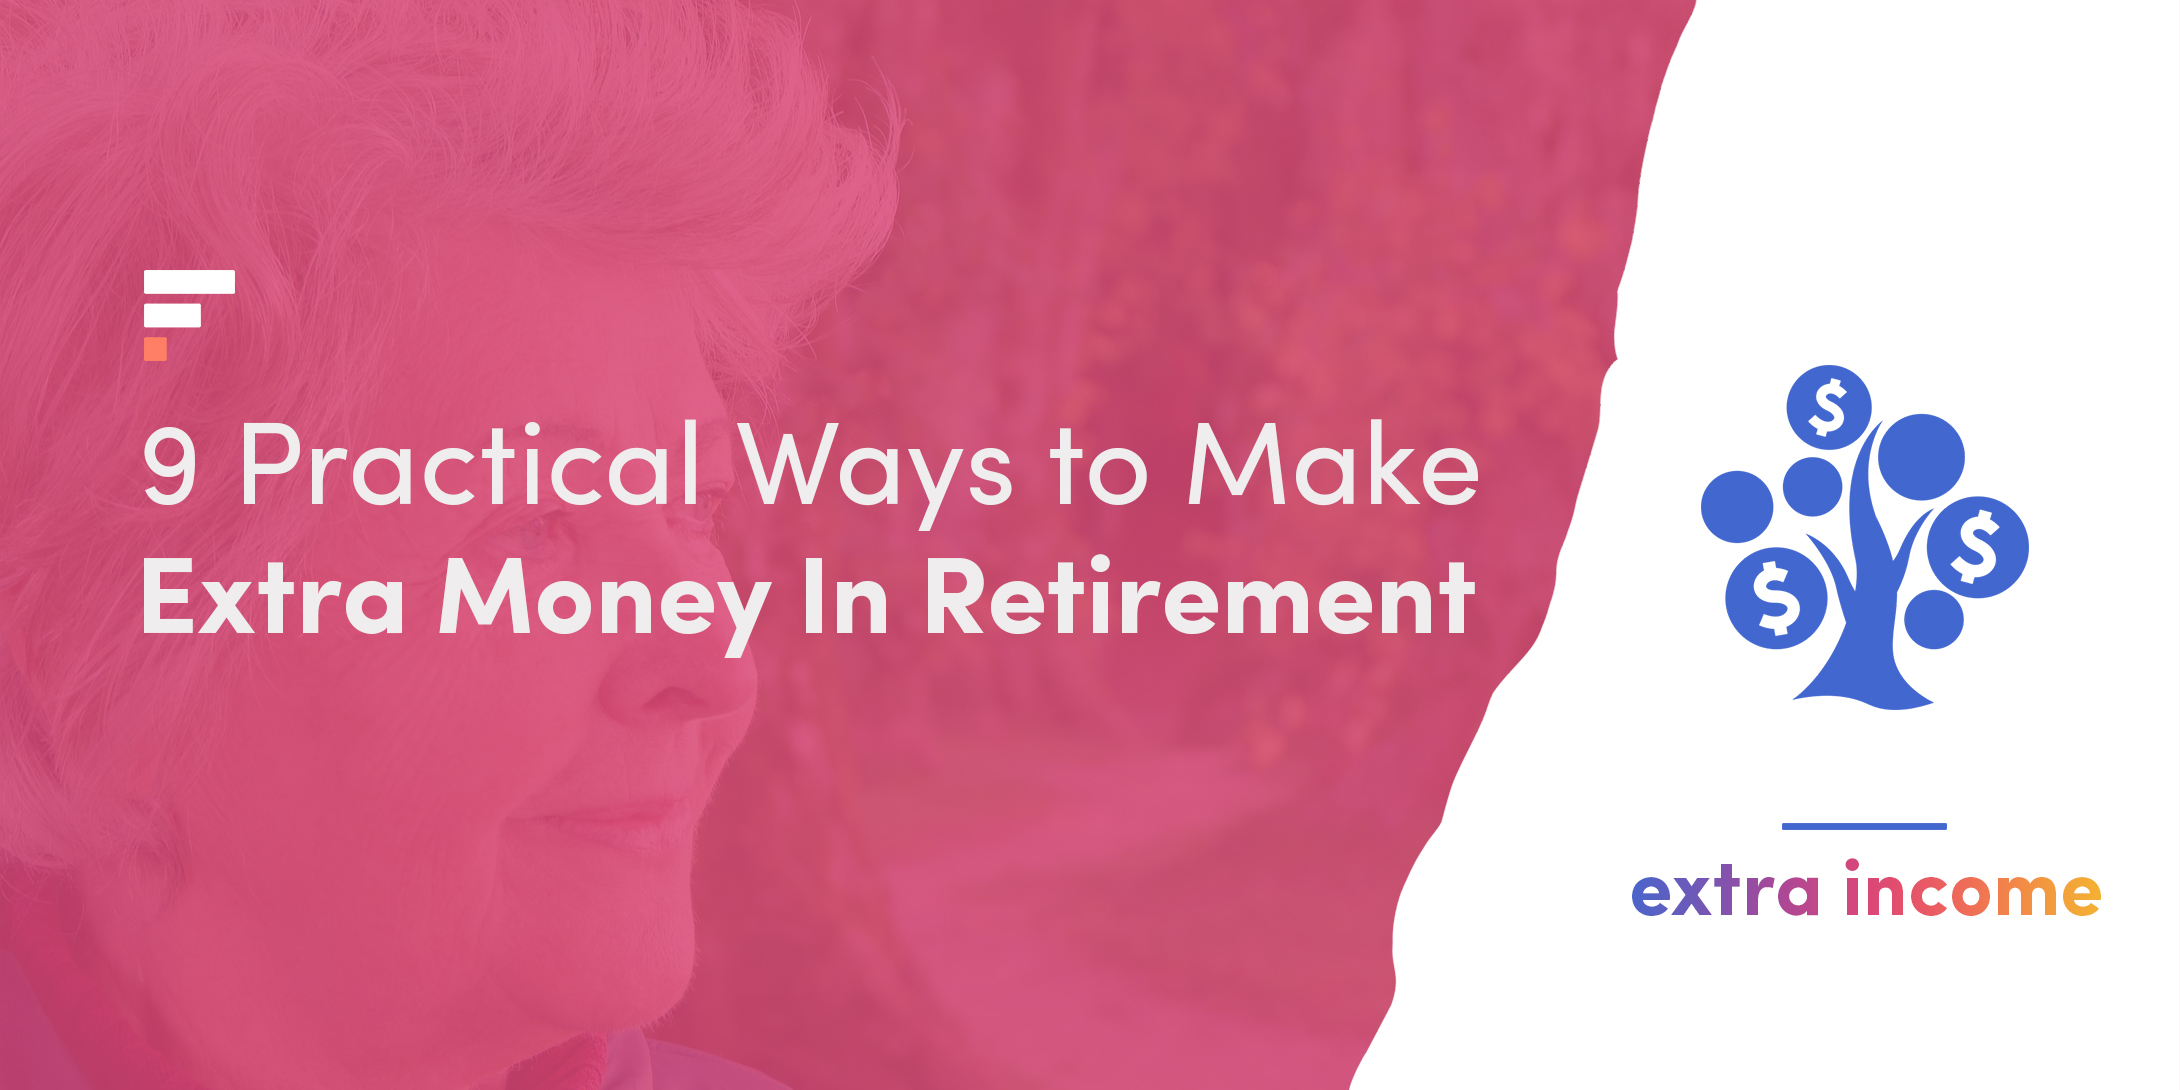 Make extra income in retirement